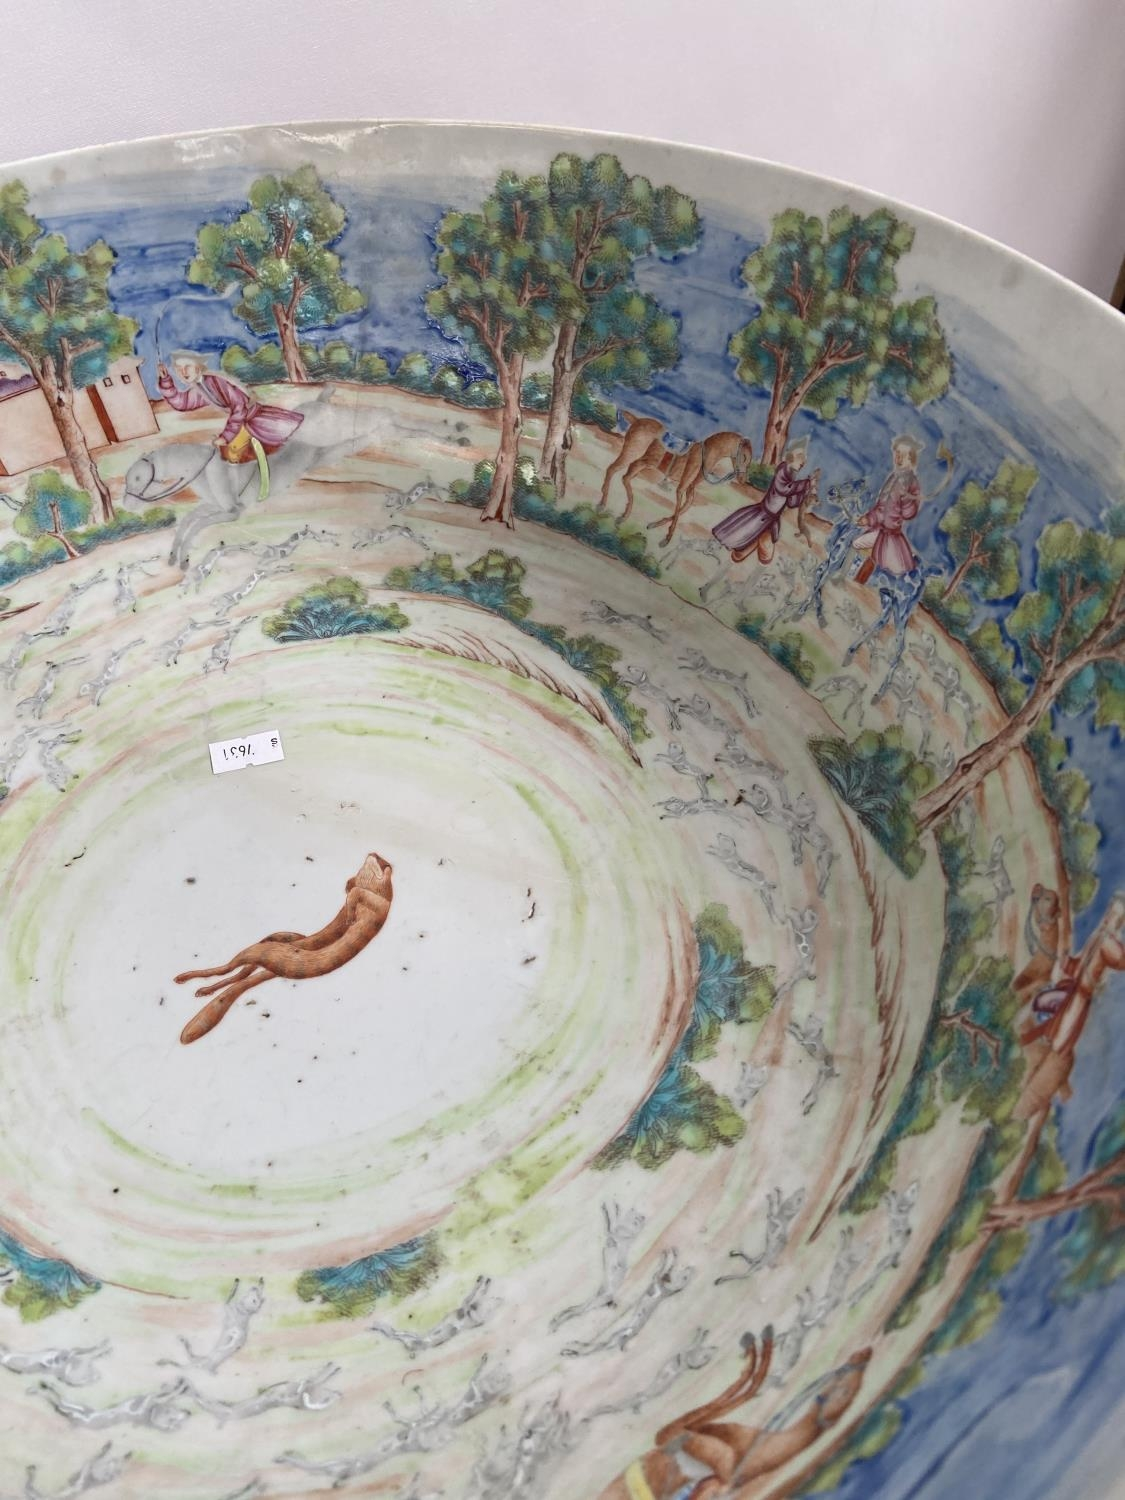 A LARGE 19TH CENTURY CHINESE HAND PAINTED BOWL. EXTERIOR DEPICTS CHINESE HUNTING SCENE PANELS. THE - Image 11 of 39